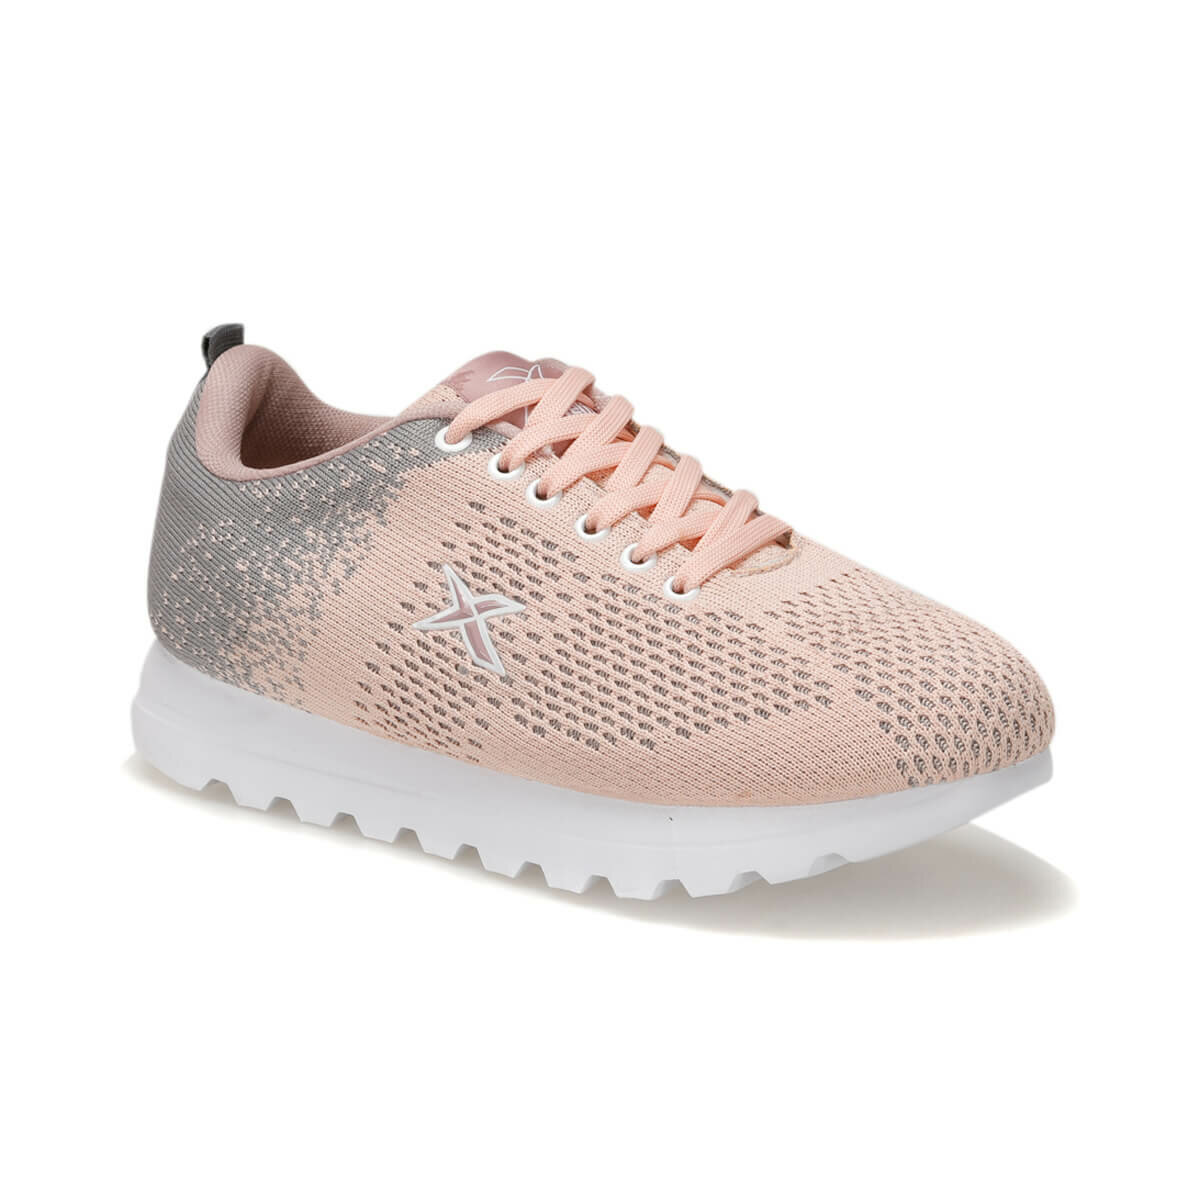 FLO GIAN KNIT W Powder Women 'S Sneaker Shoes KINETIX